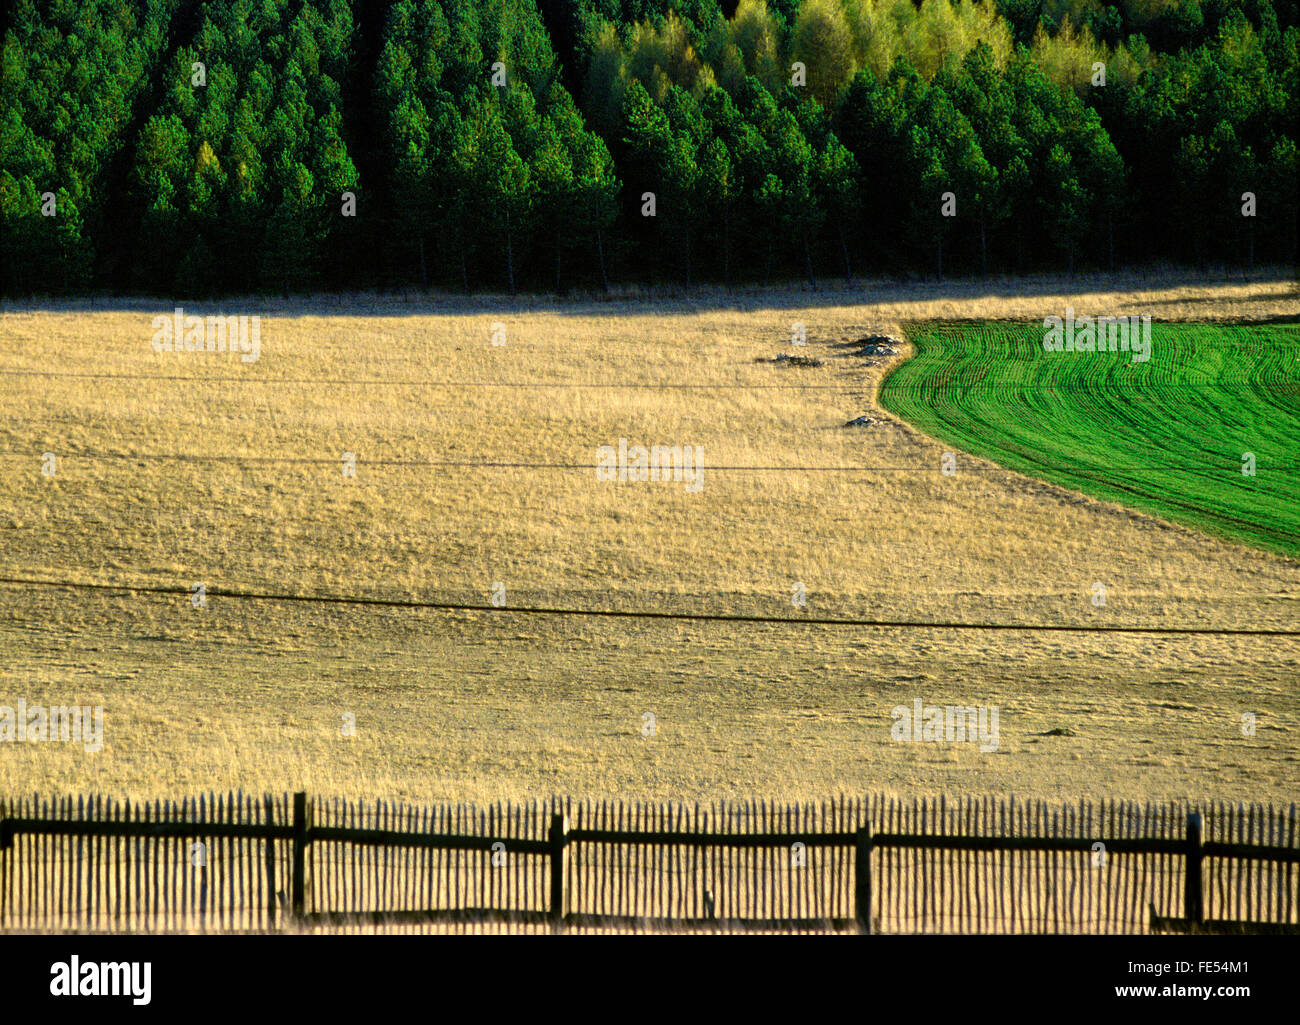 field, acre, land, green, brown, dry, fertile, graphic, grafically, diagramed, separated, divided, split, cleft, - Stock Image